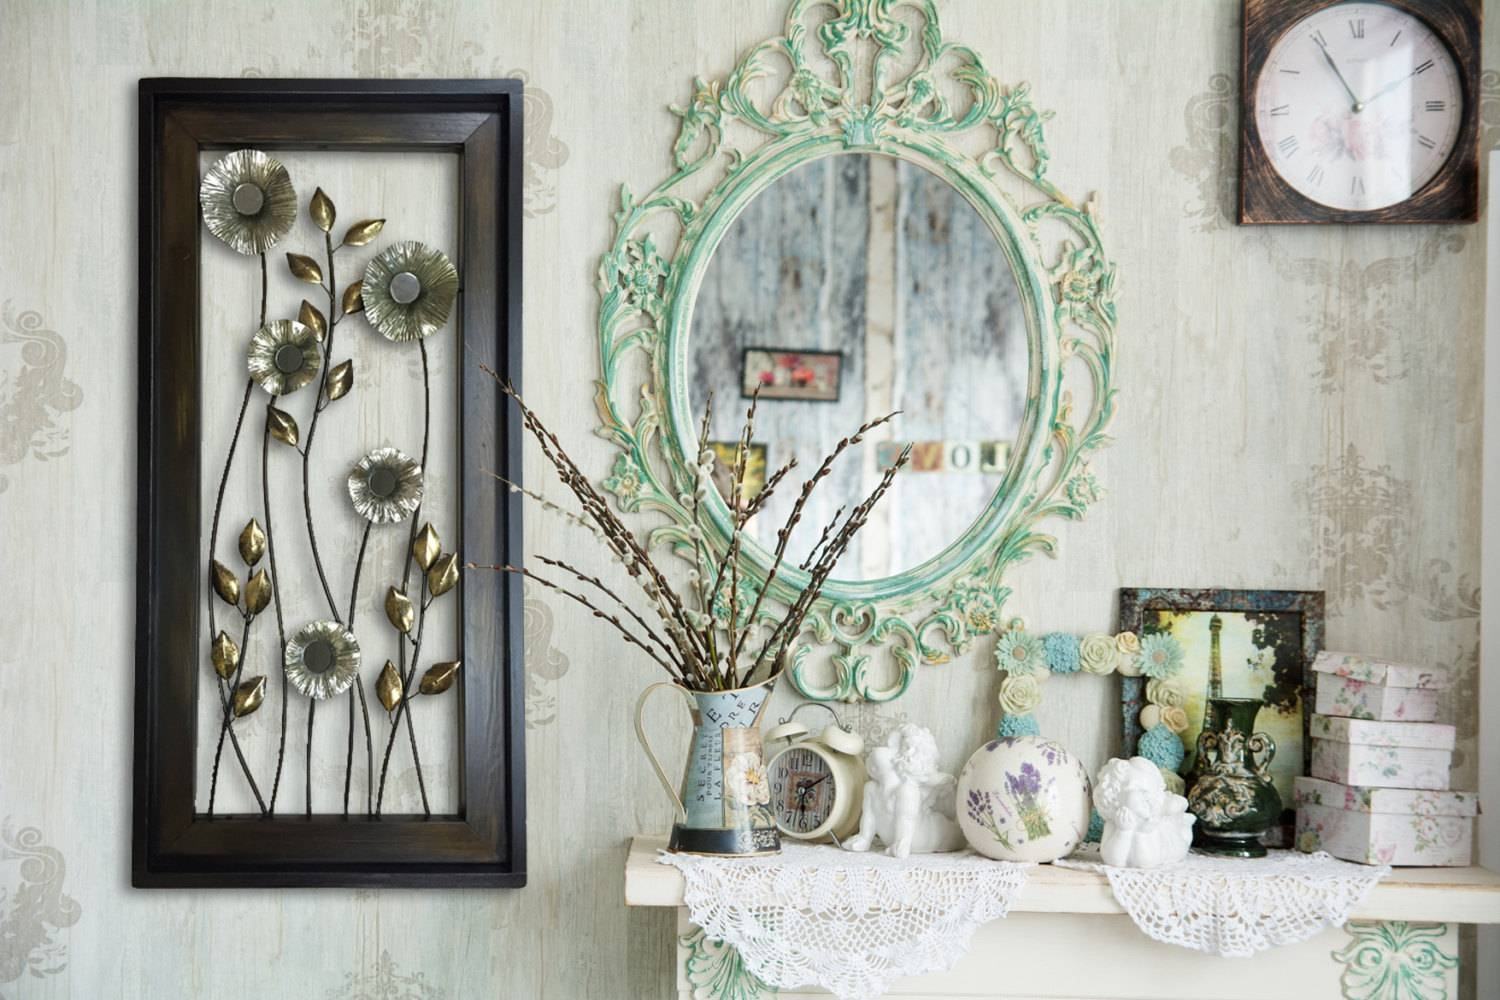 Metal Wall Art Wood Framed Flowers Mirrors Home Decor Large Within Current Wood Framed Metal Wall Art (View 4 of 20)